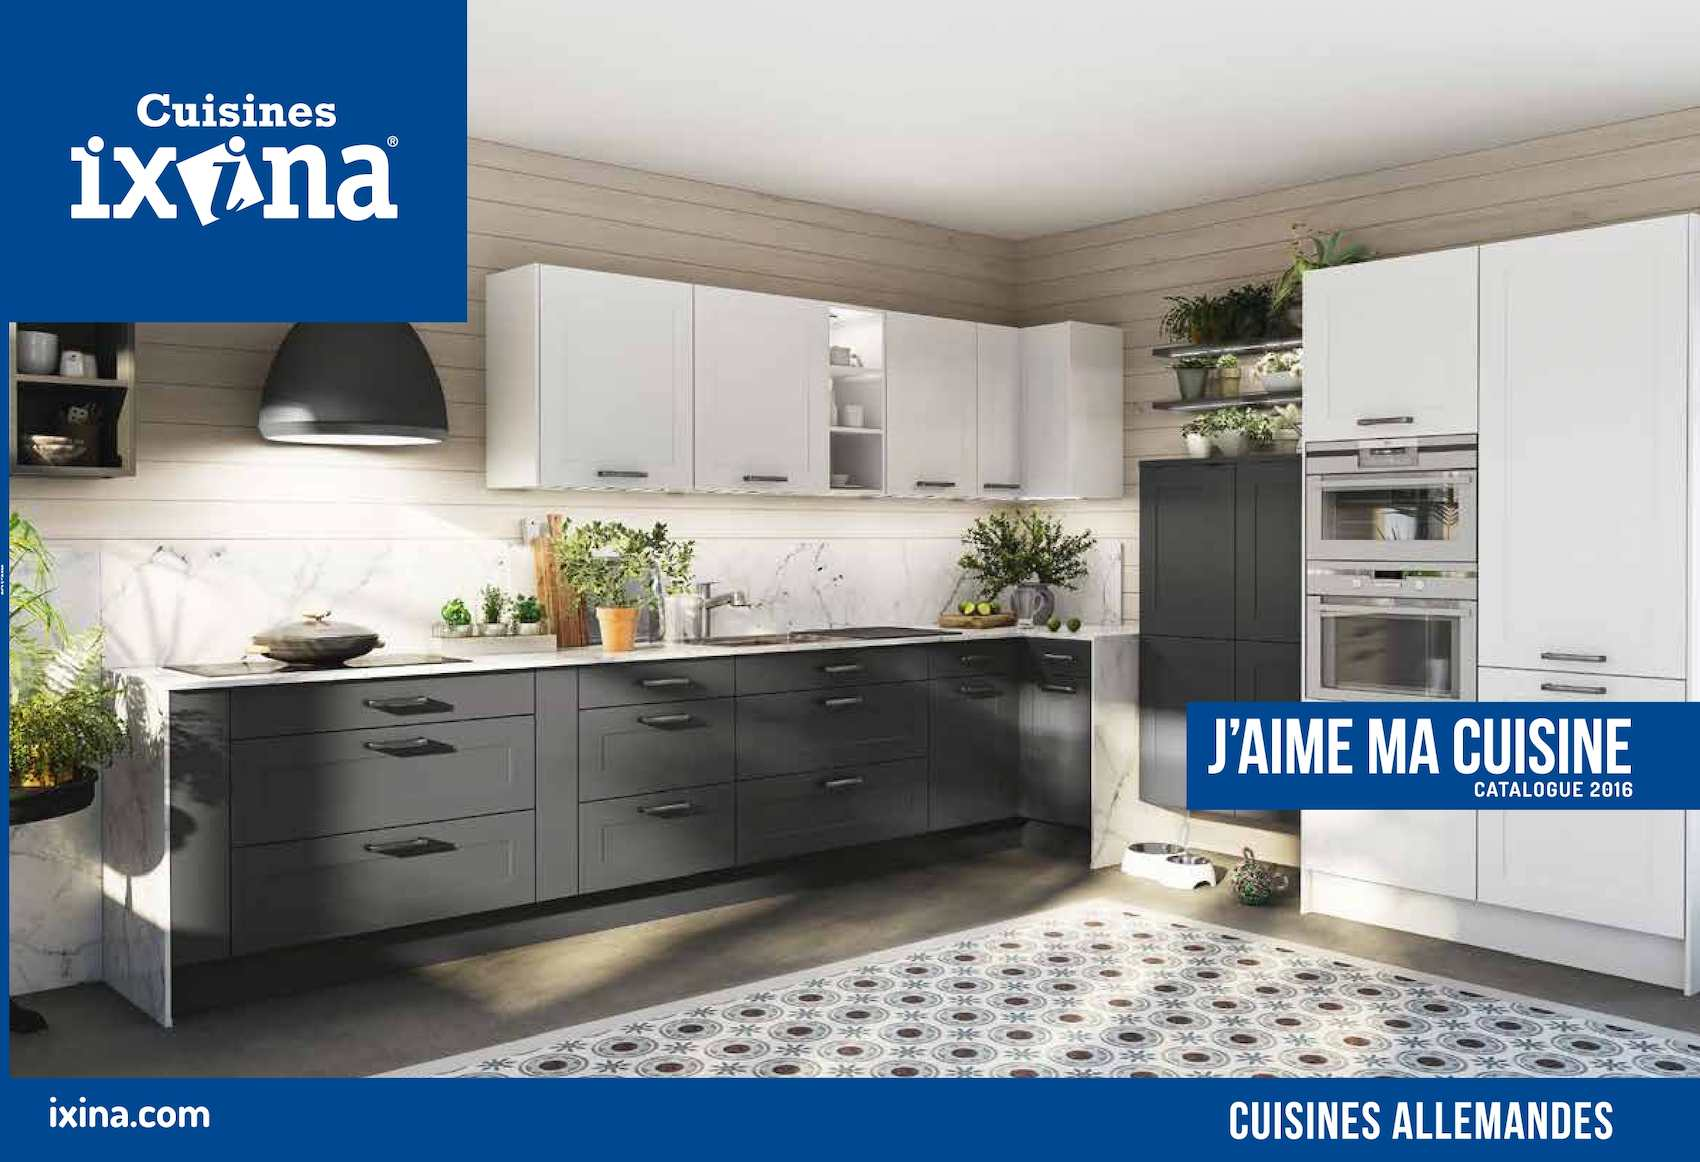 Calam o catalogue ixina 2016 final - Cuisines ixina catalogue ...